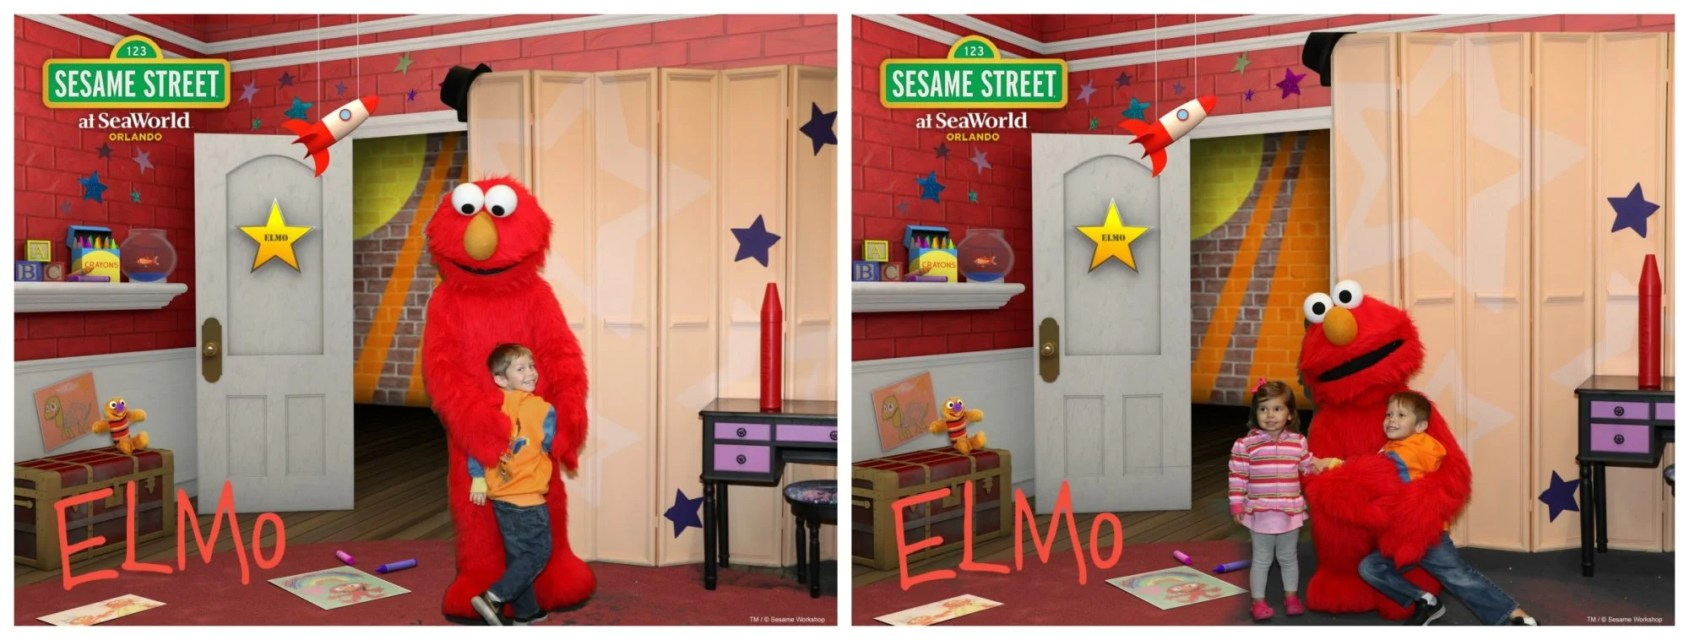 SESAME STREET AT SEAWORLD ORLANDO - Elmo Photos